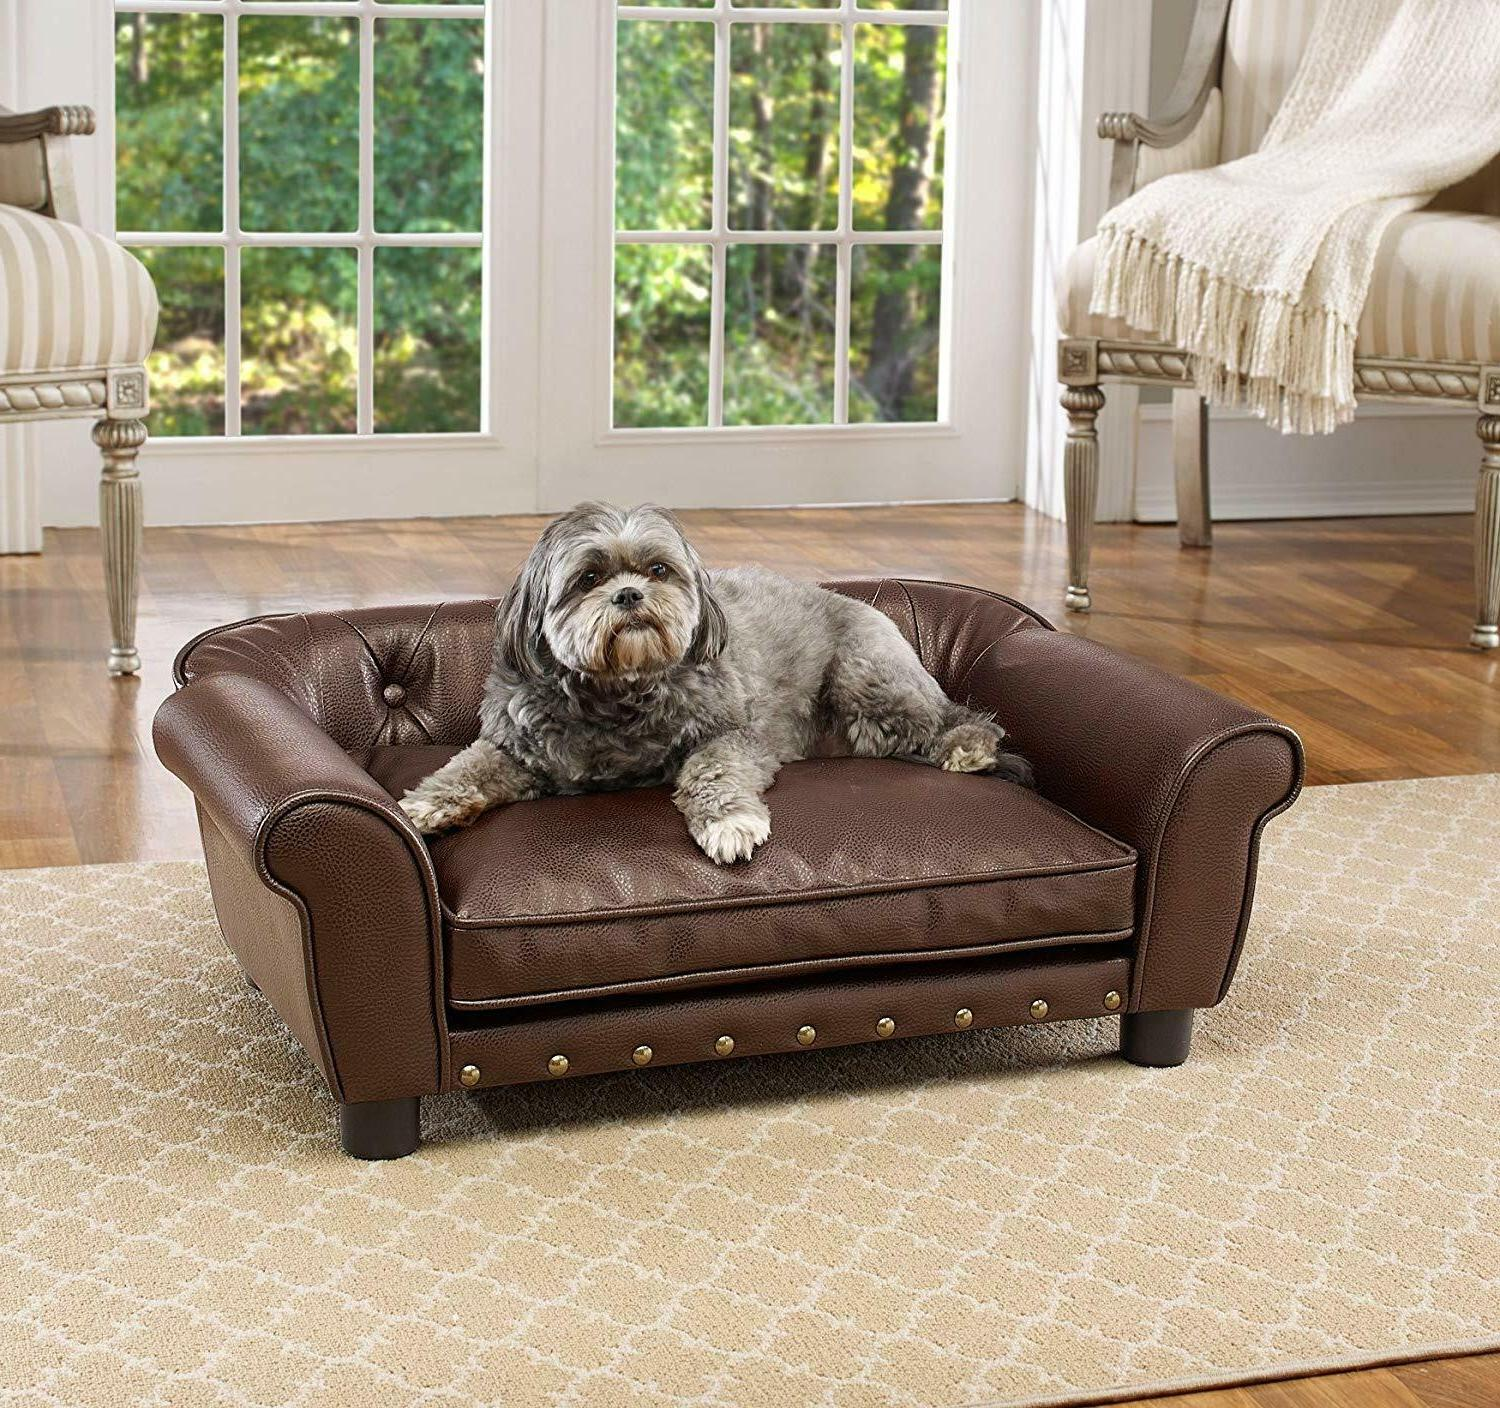 Fancy Dog Bed Raised Medium Tufted Pet Sofa Couch Faux Leath